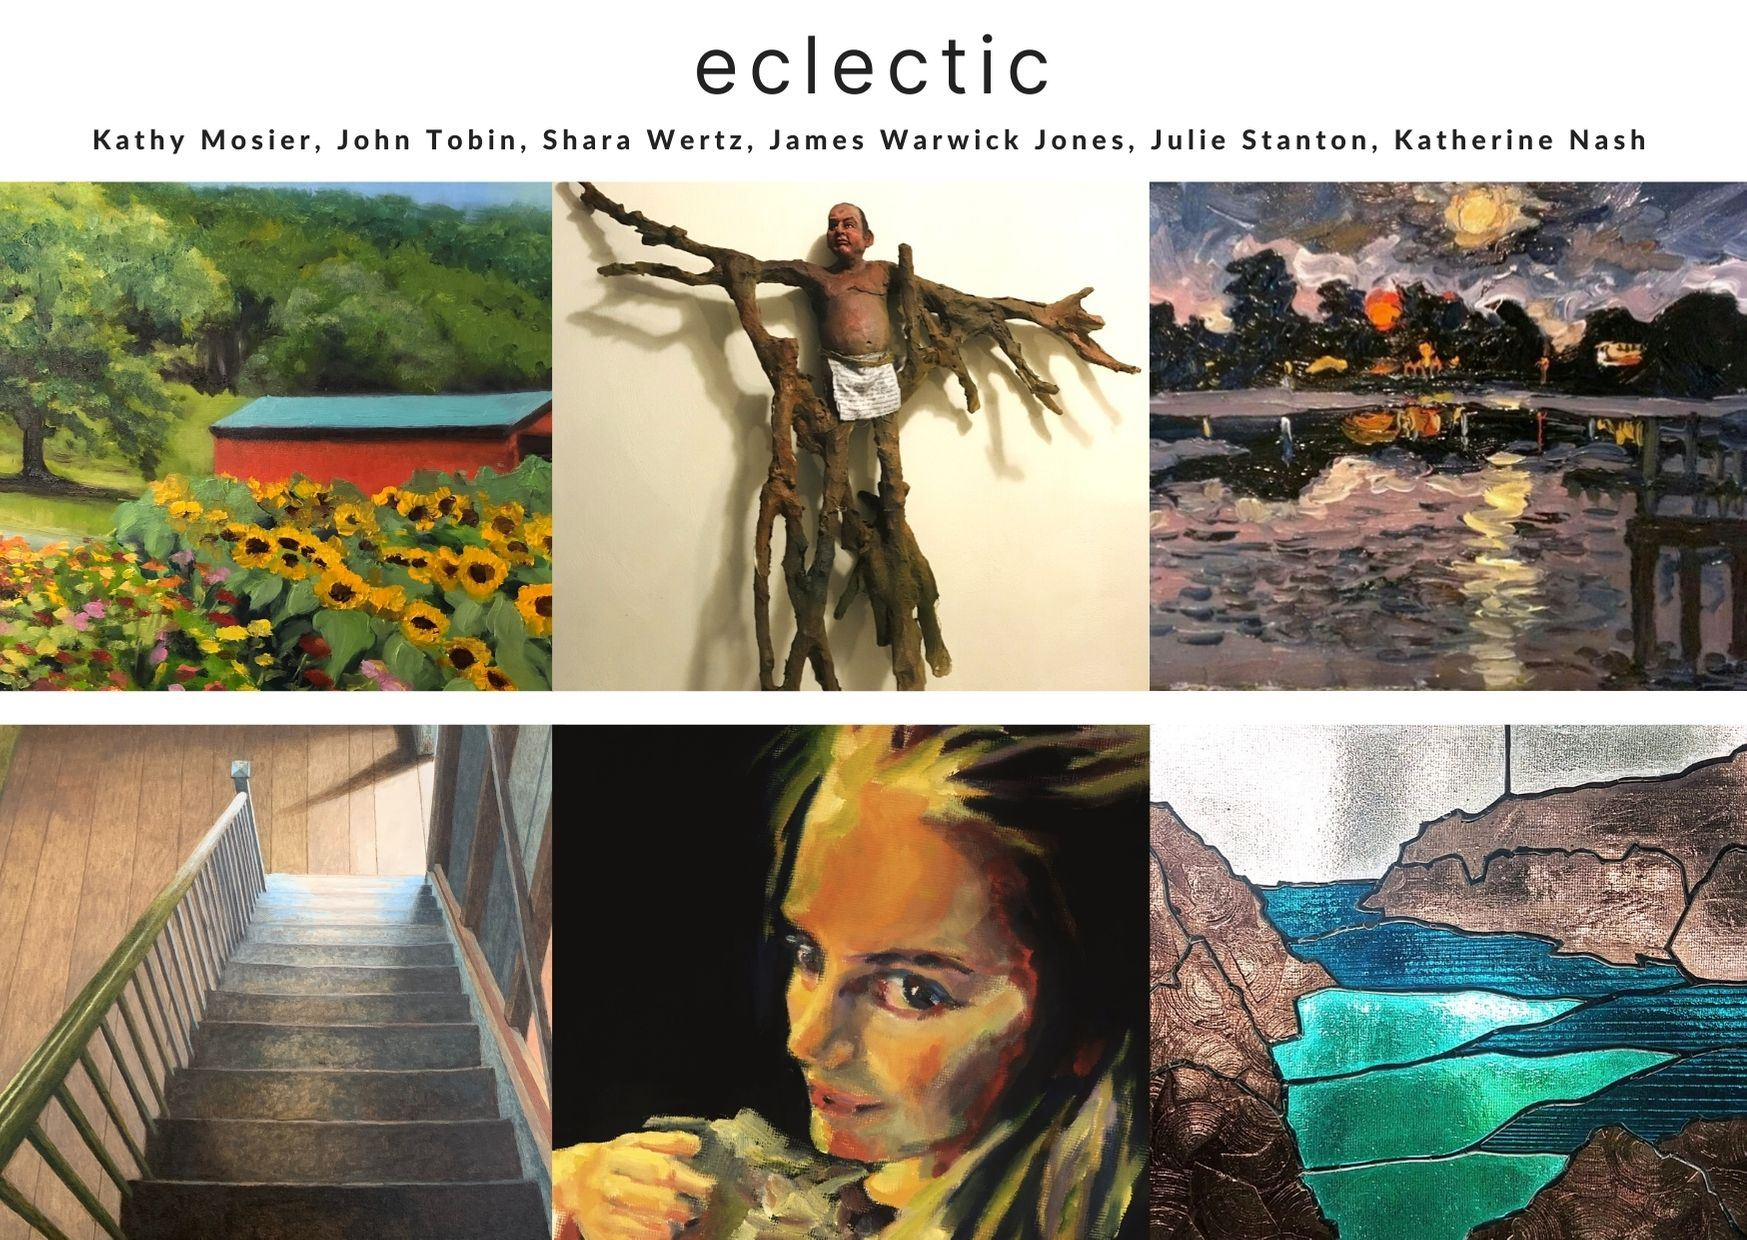 Images of artwork that will be in the exhibition opening at the Offsite Gallery on September 26